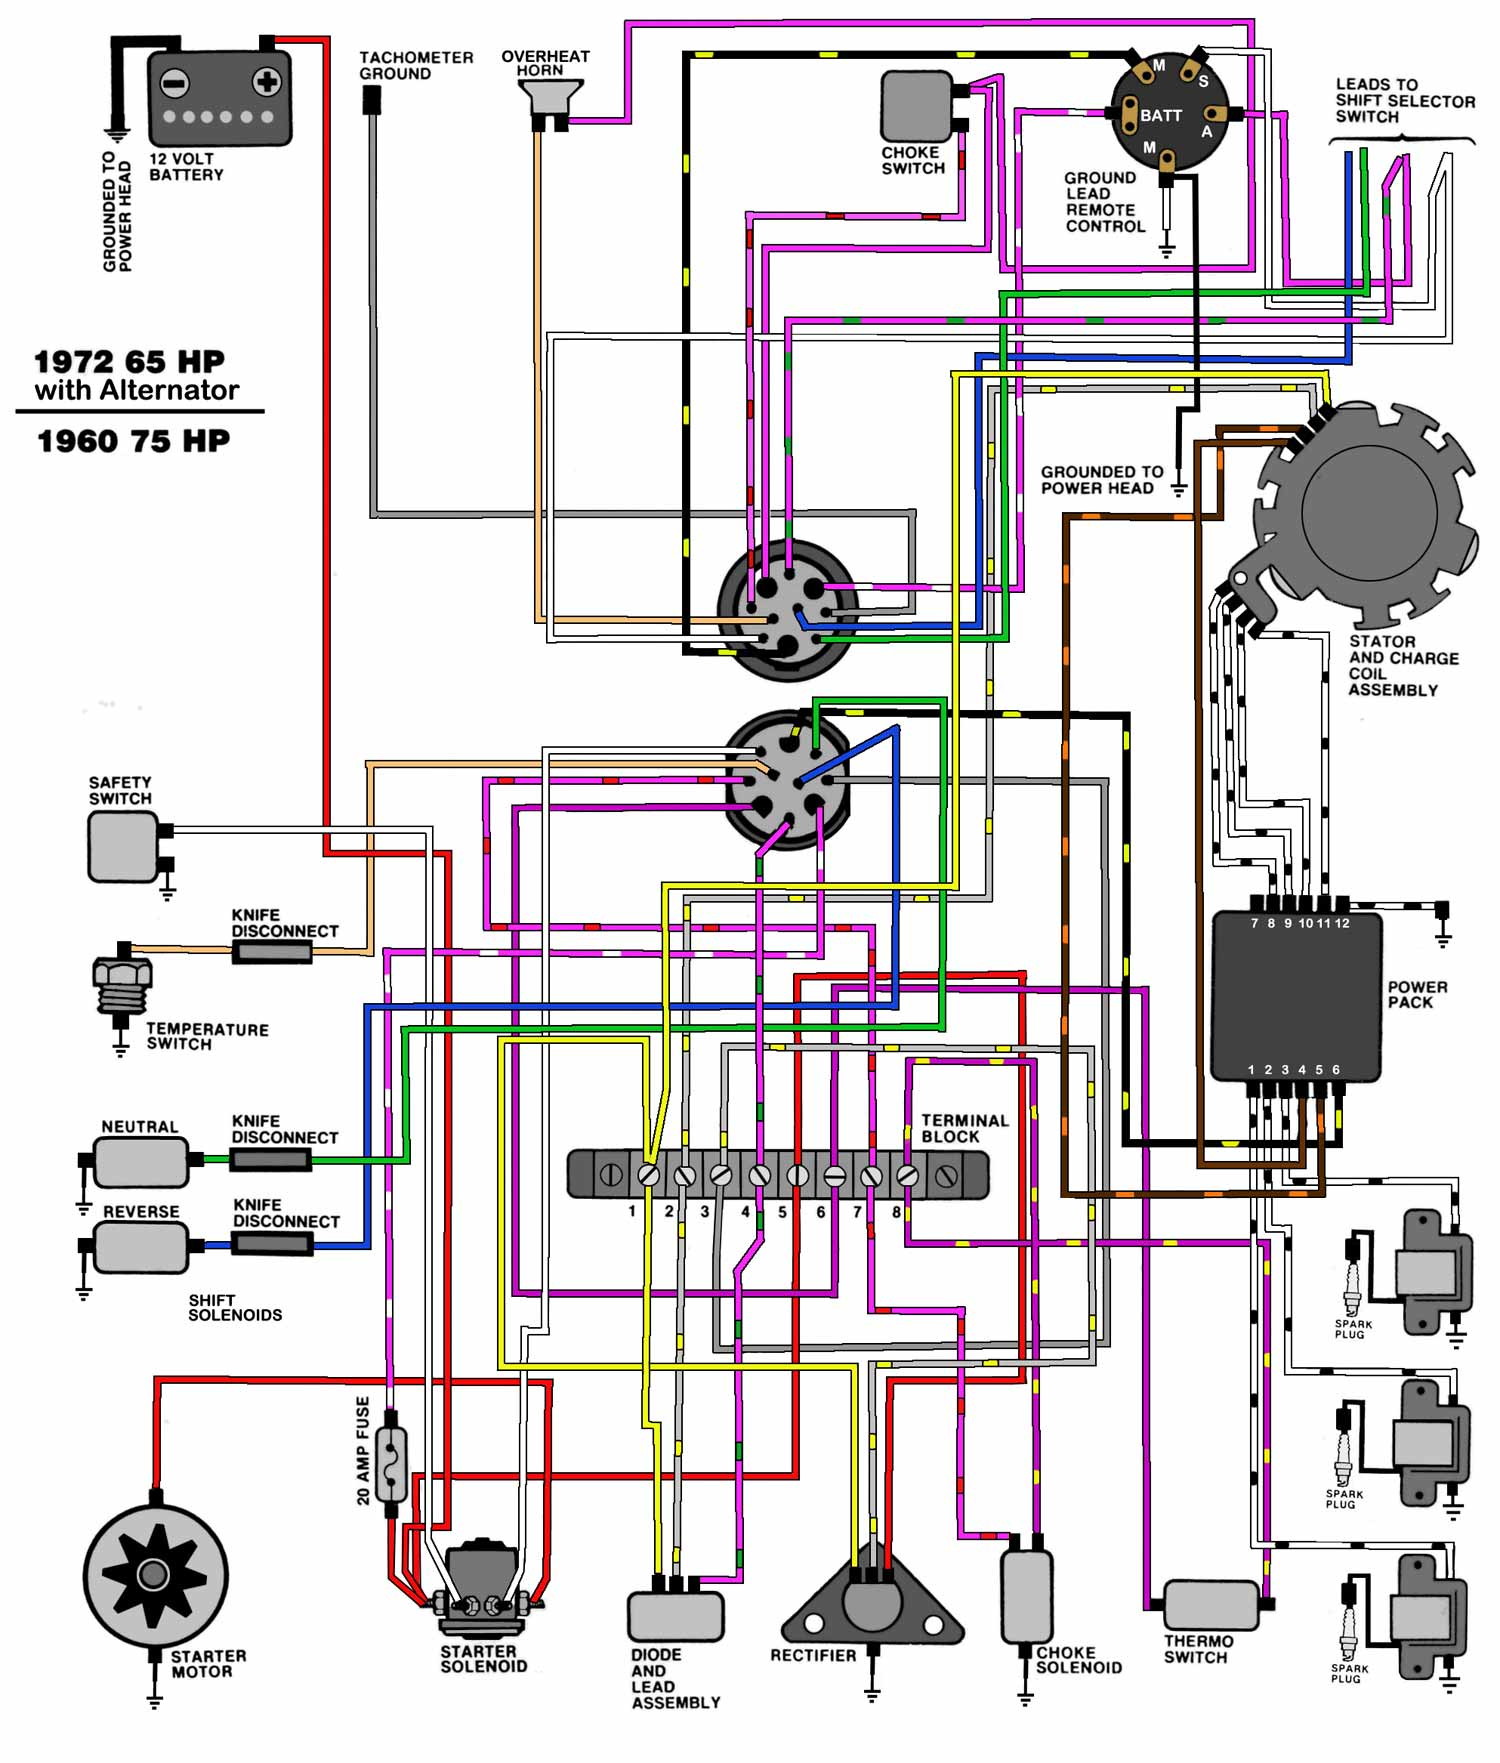 EVINRUDE JOHNSON Outboard Wiring Diagrams -- MASTERTECH MARINE -- on omc 4.3 oil cooler, omc cobra 4.3 electrical wiring, omc 4.3 hose, omc 4.3 engine, omc 4.3 manual, omc cobra 4.3 battery connections,